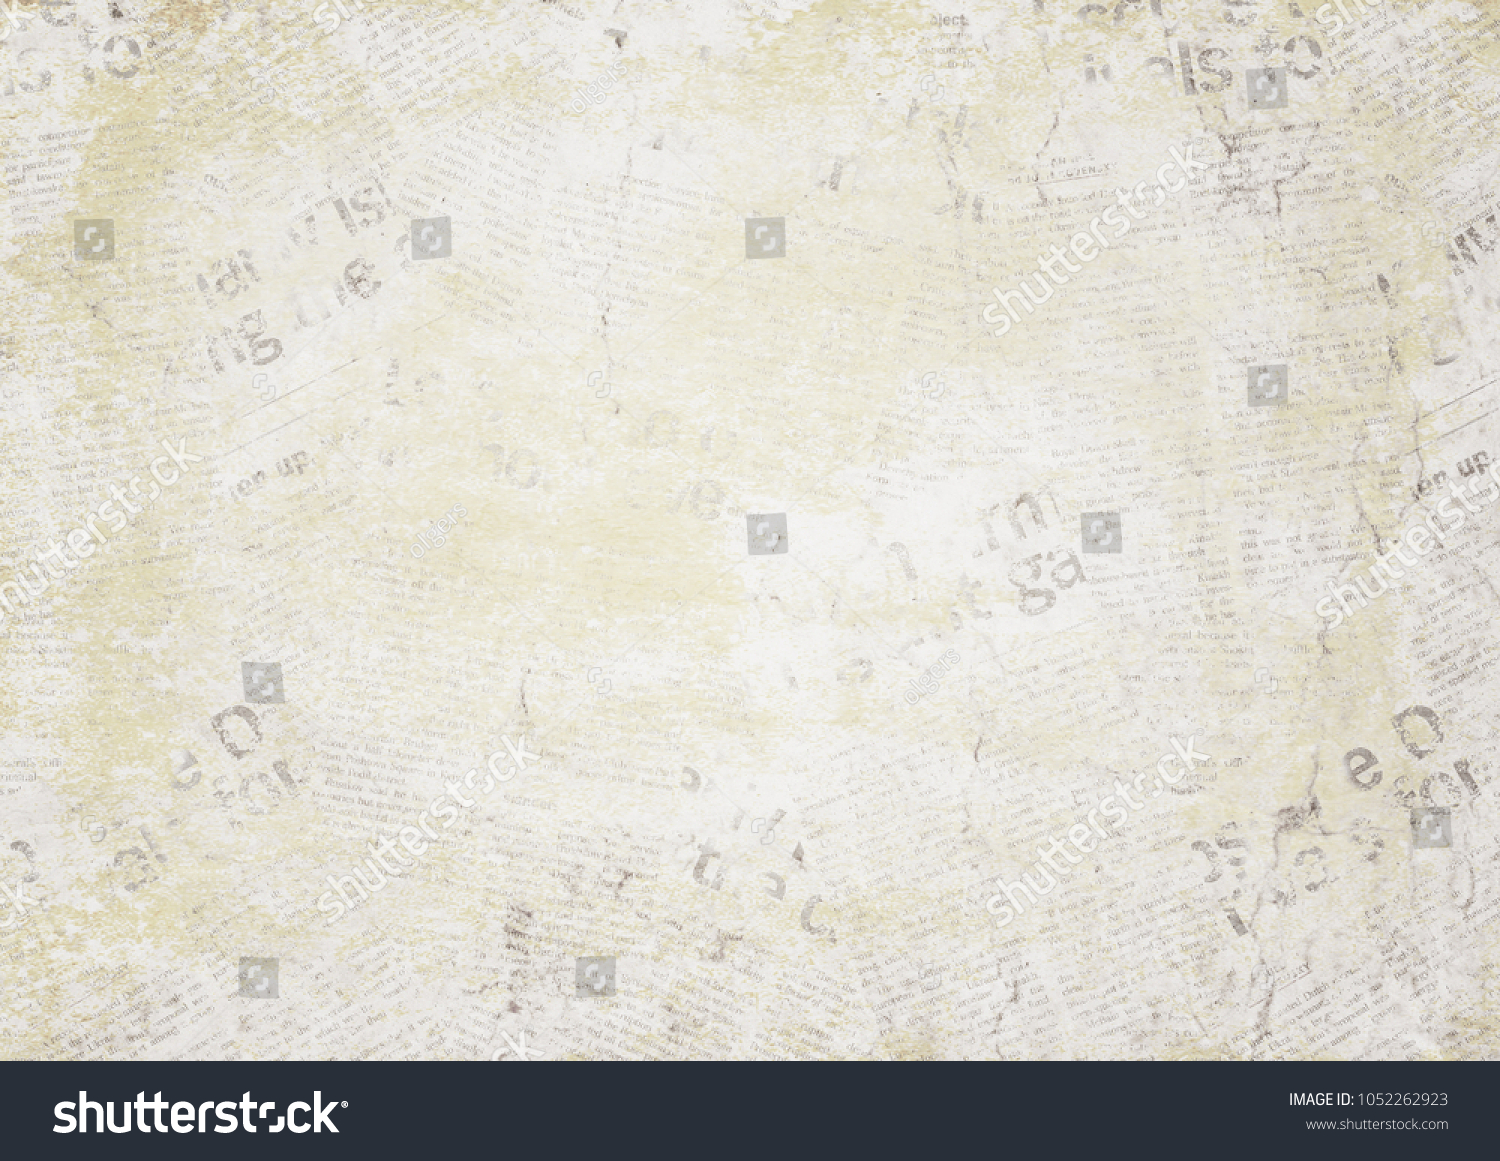 old newspaper paper grunge texture horizontal stock photo (edit now